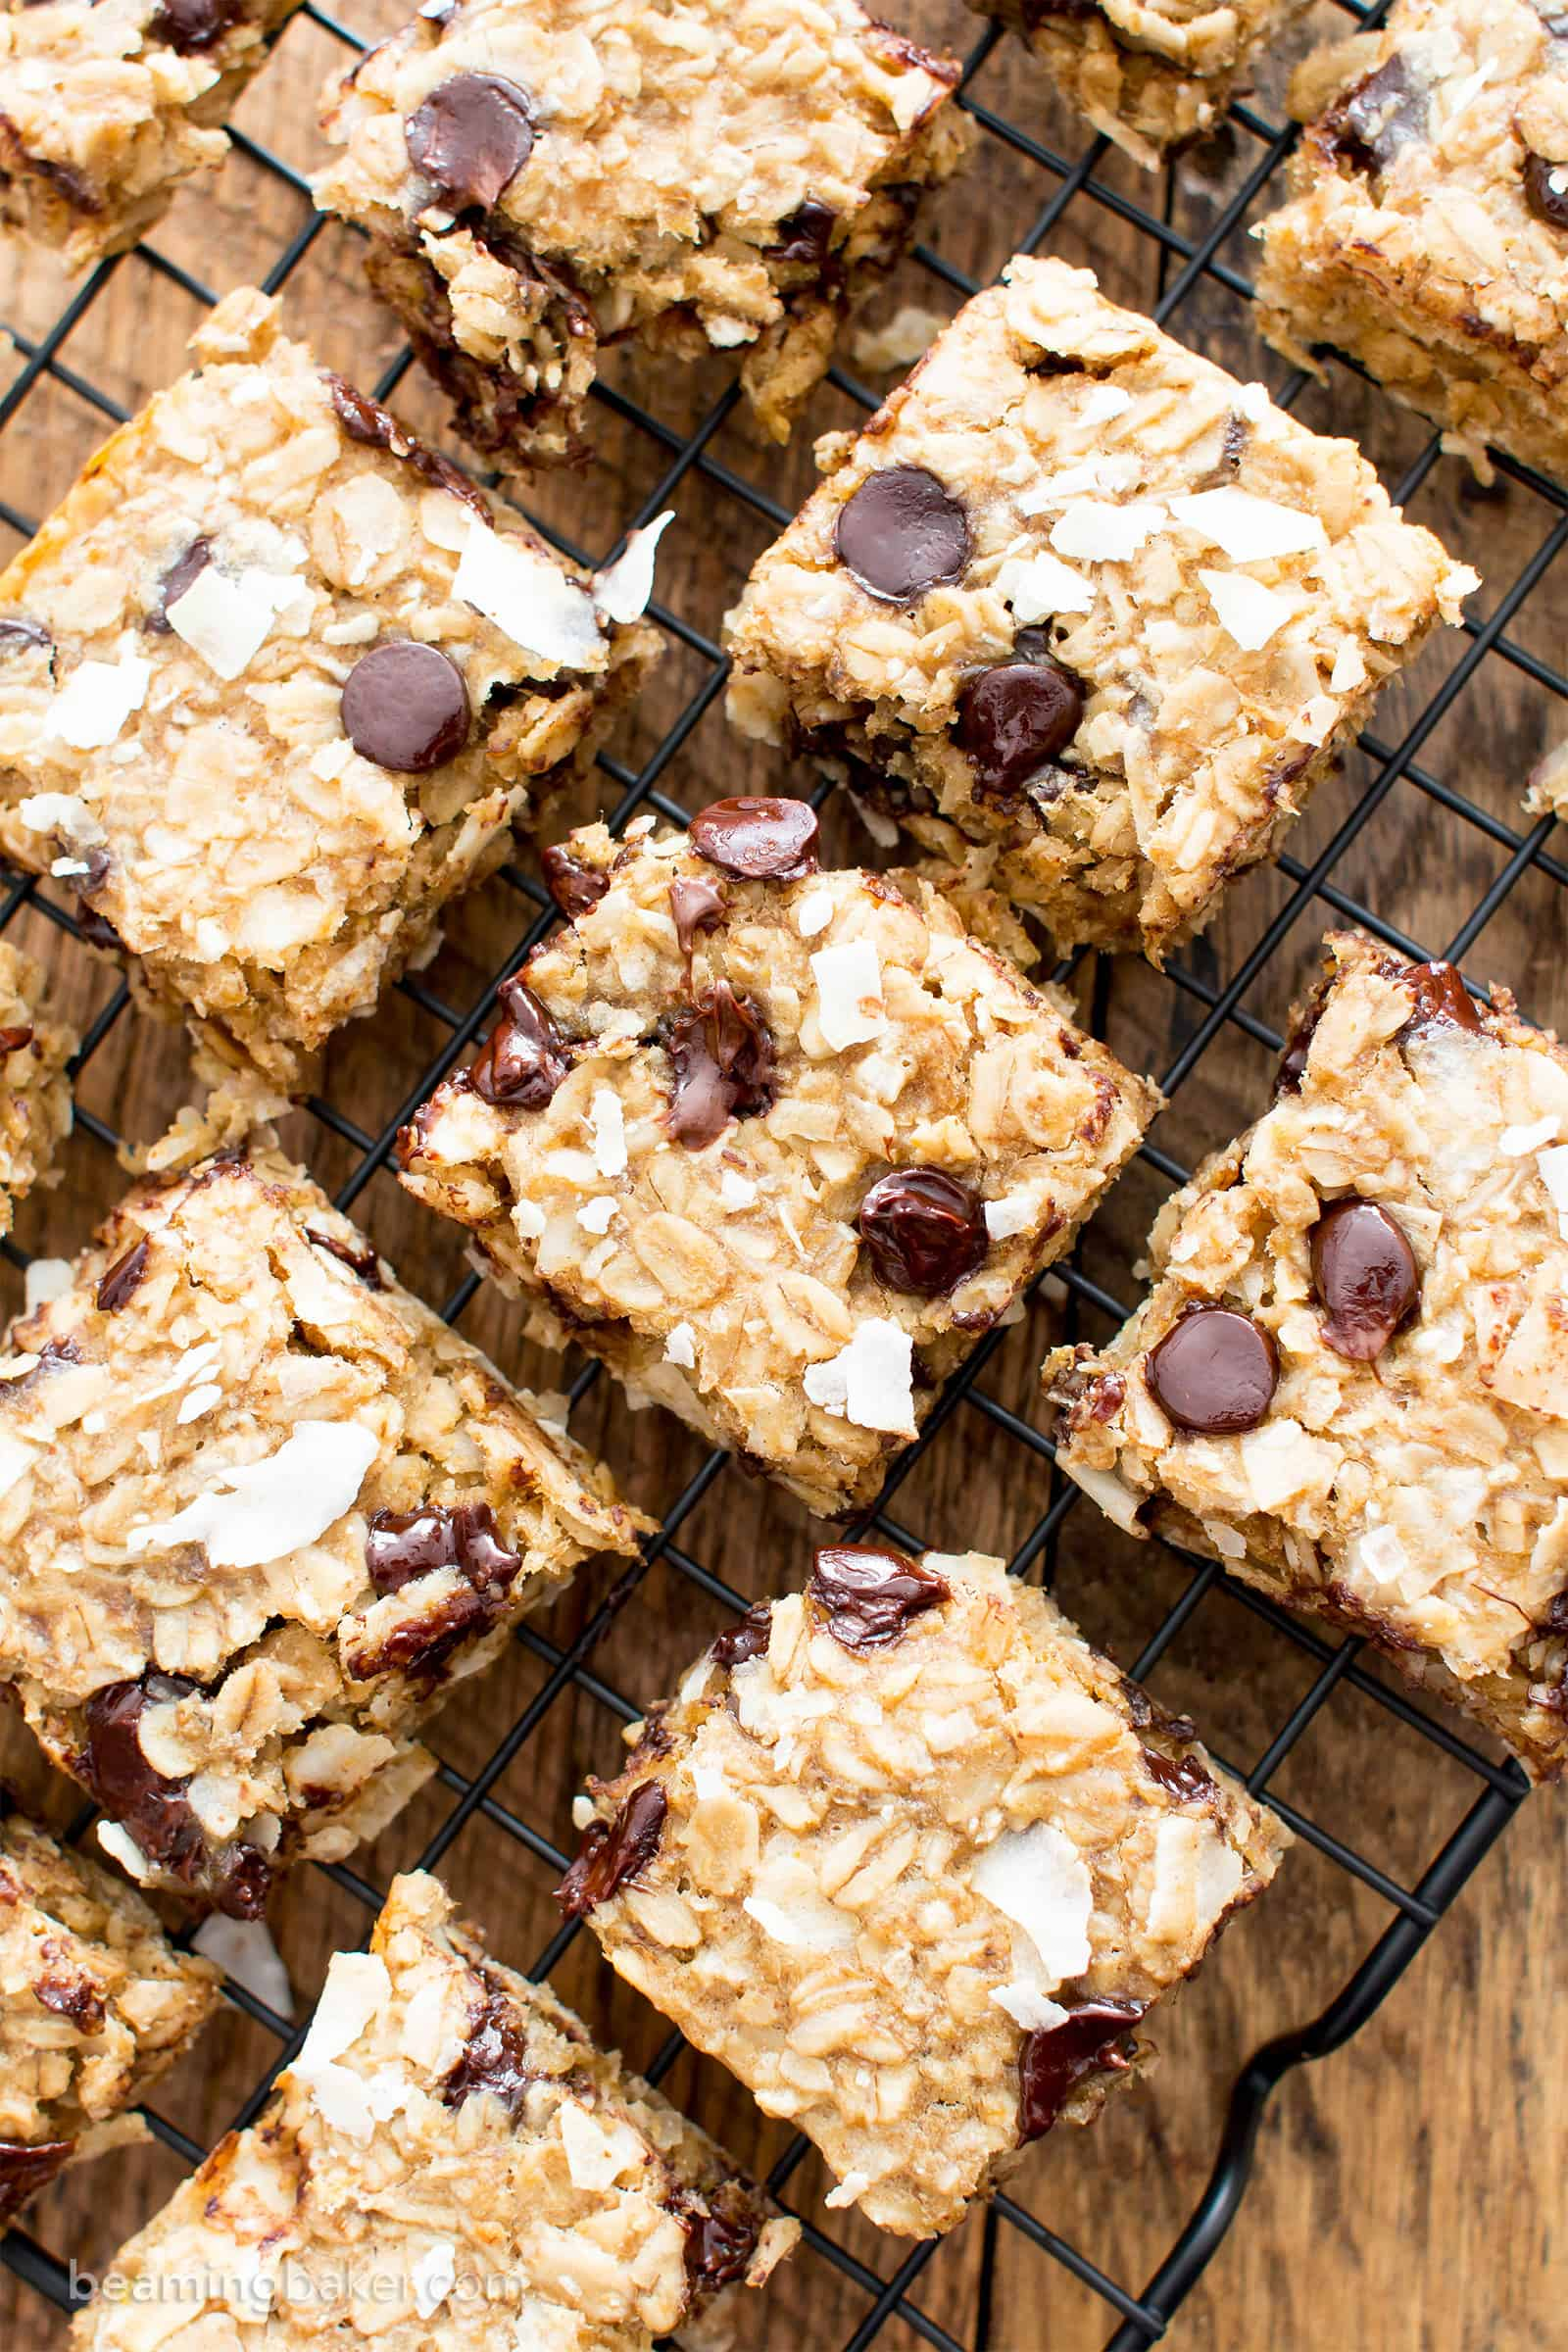 Easy Gluten Free Coconut Chocolate Chip Banana Breakfast Bars (V, GF): a quick and easy recipe for healthy homemade breakfast bars made with simple, whole ingredients. #Vegan #GlutenFree #DairyFree #Healthy #Breakfast | Recipe on BeamingBaker.com